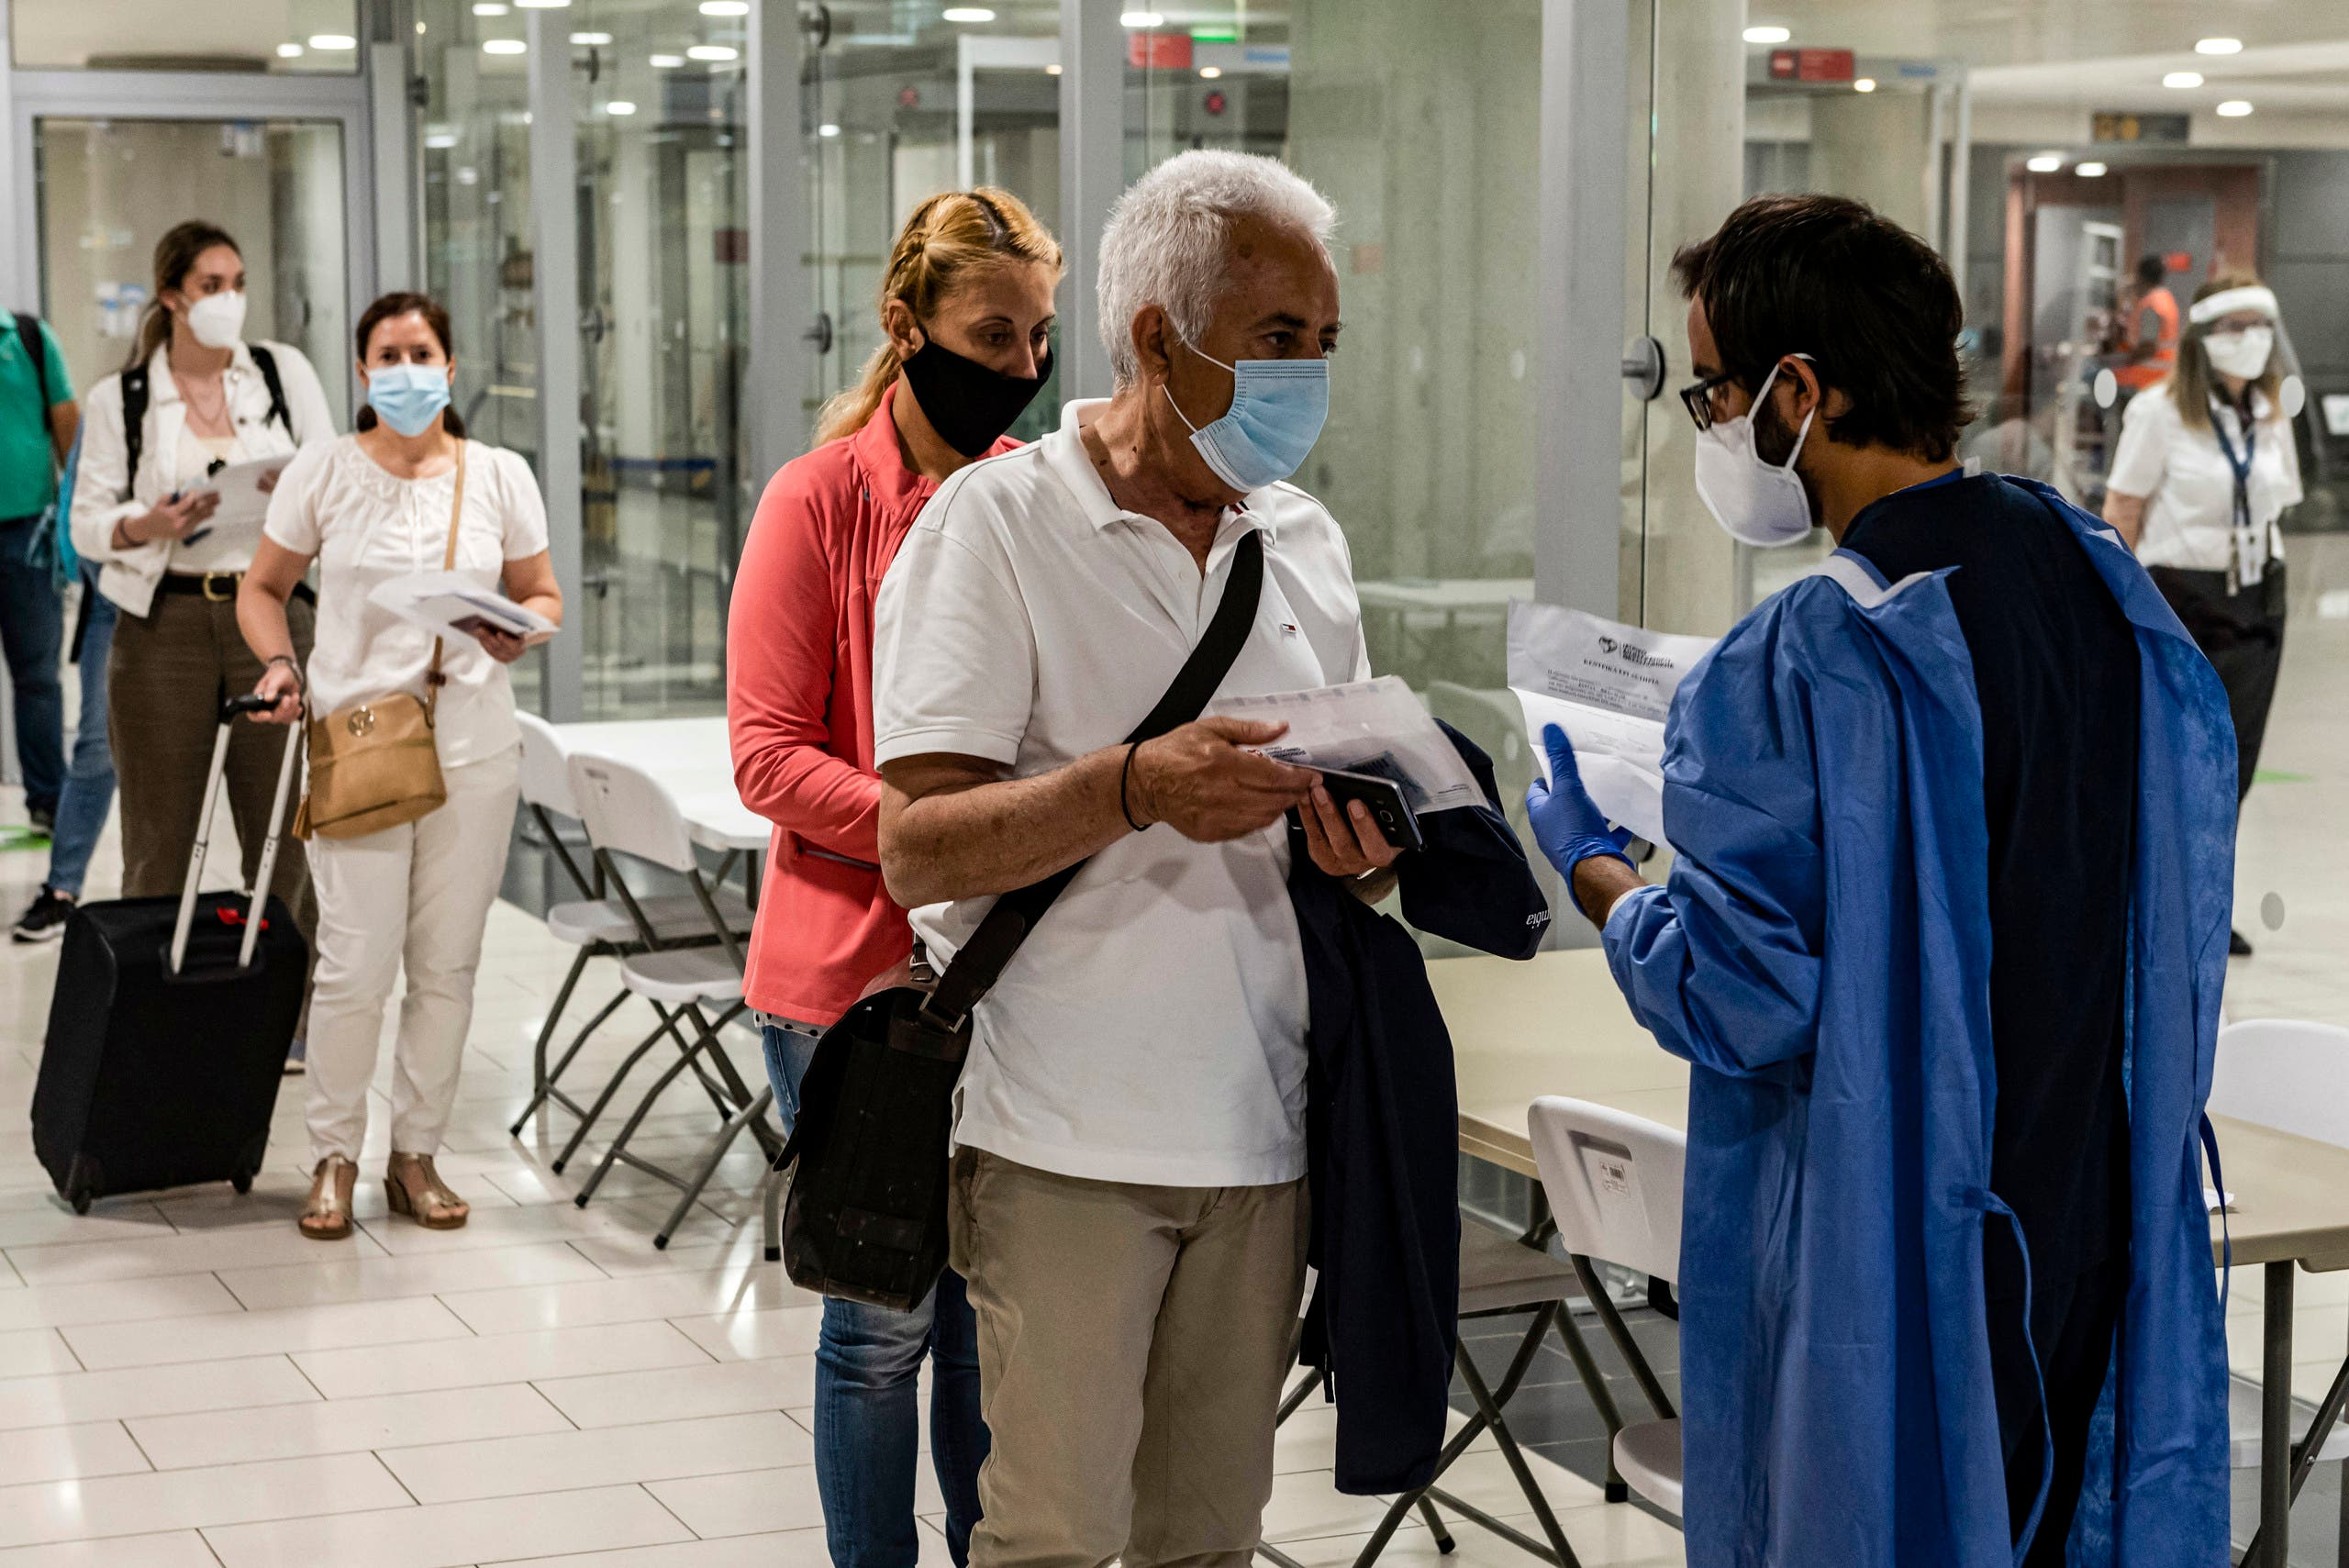 A health worker checks the medical documents of mask-clad travellers arriving at Cyprus' Larnaca International Airport on June 9, 2020, before being screened for COVID-19 coronavirus symptoms on their way to passport control. (File photo: AFP)